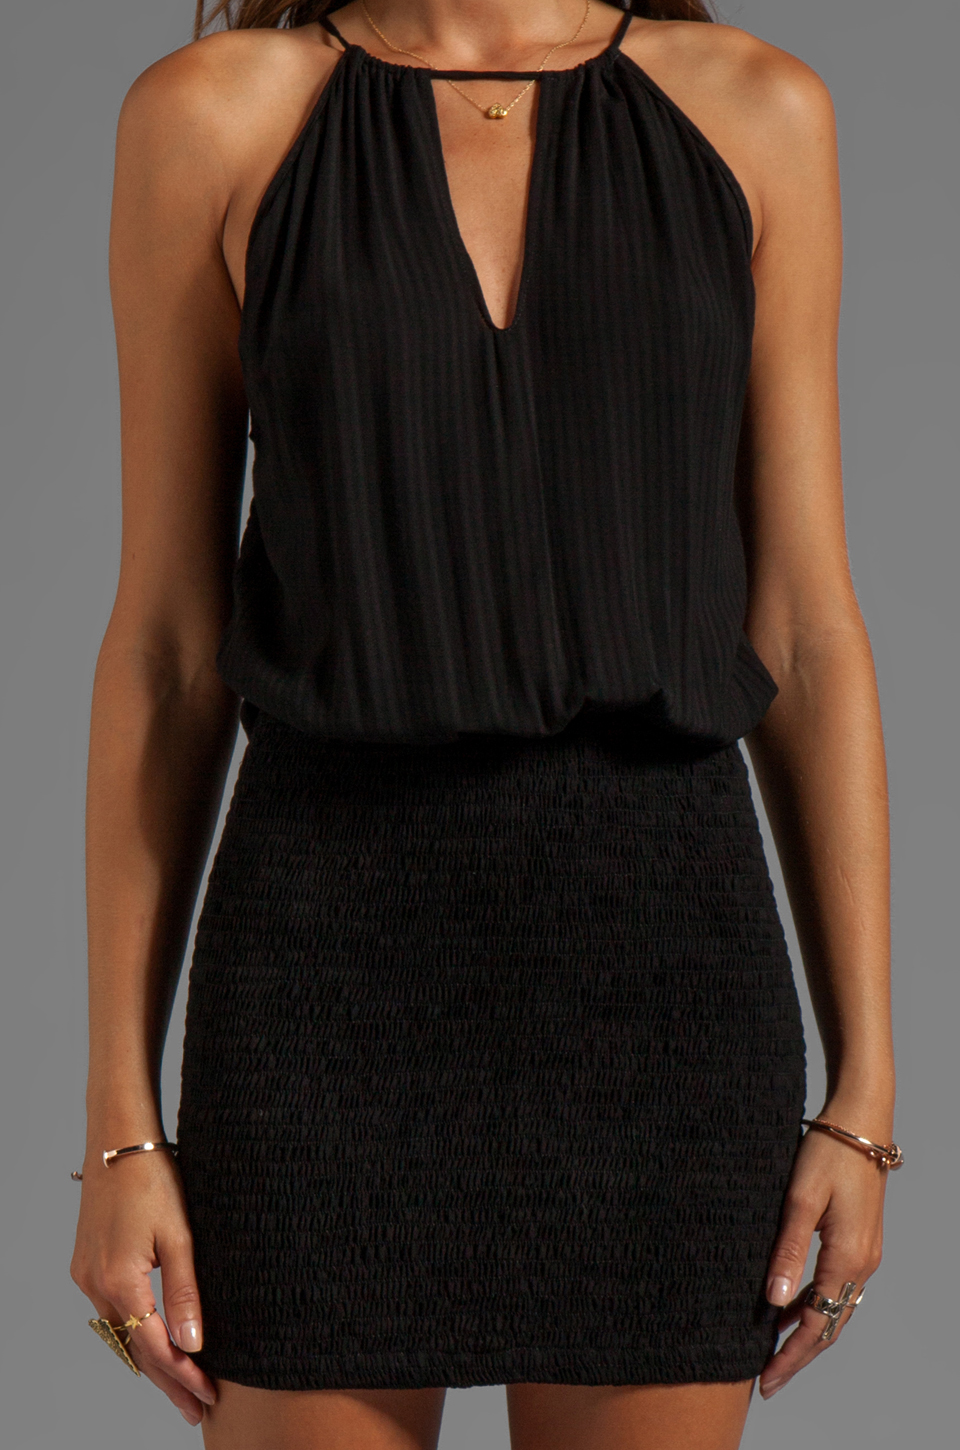 Indah Canoa Blouson Cut Away Smocked Mini Dress in Black